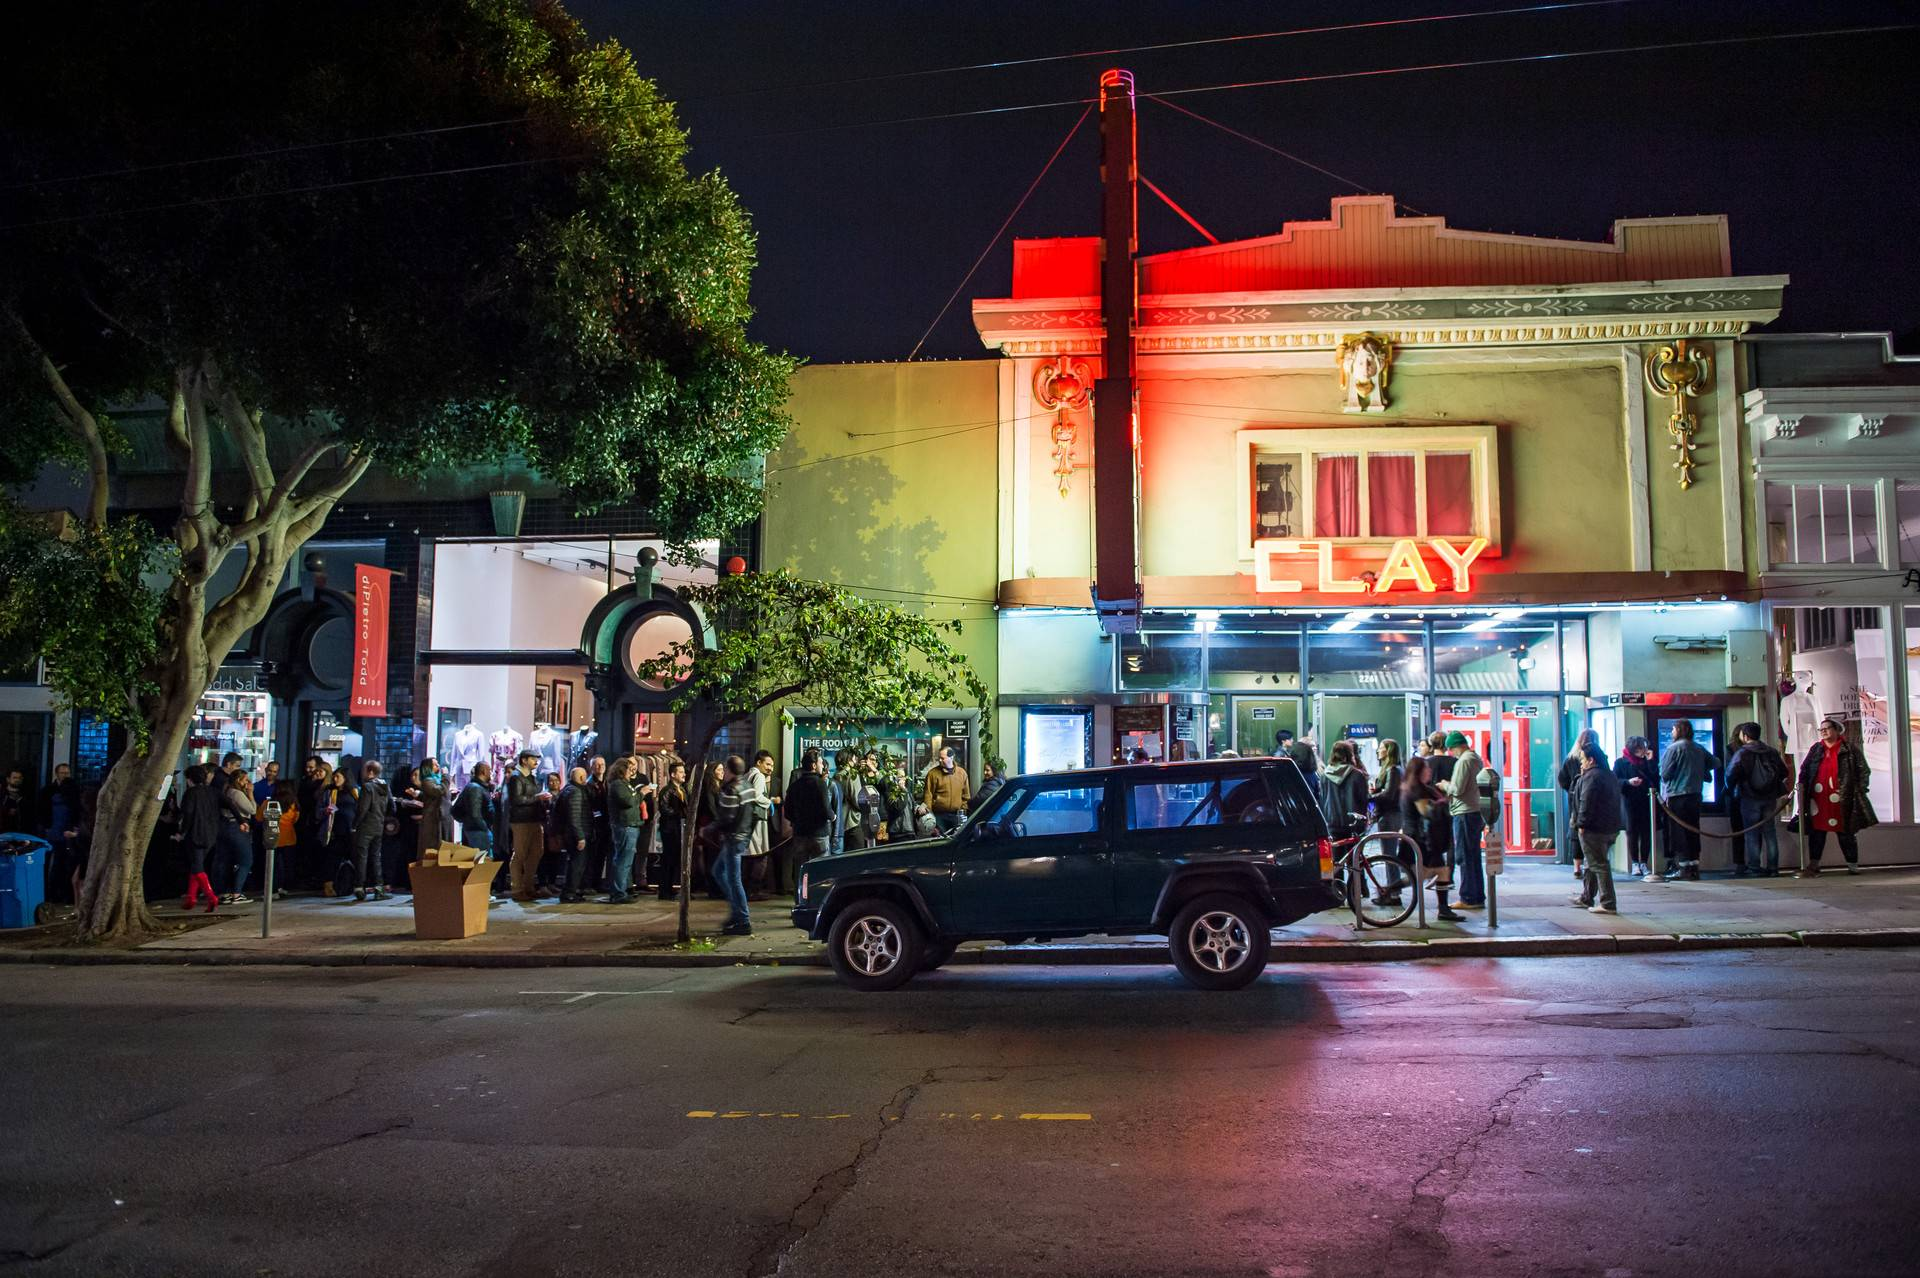 Crowds line the sidewalk waiting to enter the Clay Theater for a sold-out performance of the Rocky Horror Picture show on Saturday. This midnight movie performance is the last for the theater, which is shutting its doors on Sunday after 110 years. Beth LaBerge/KQED